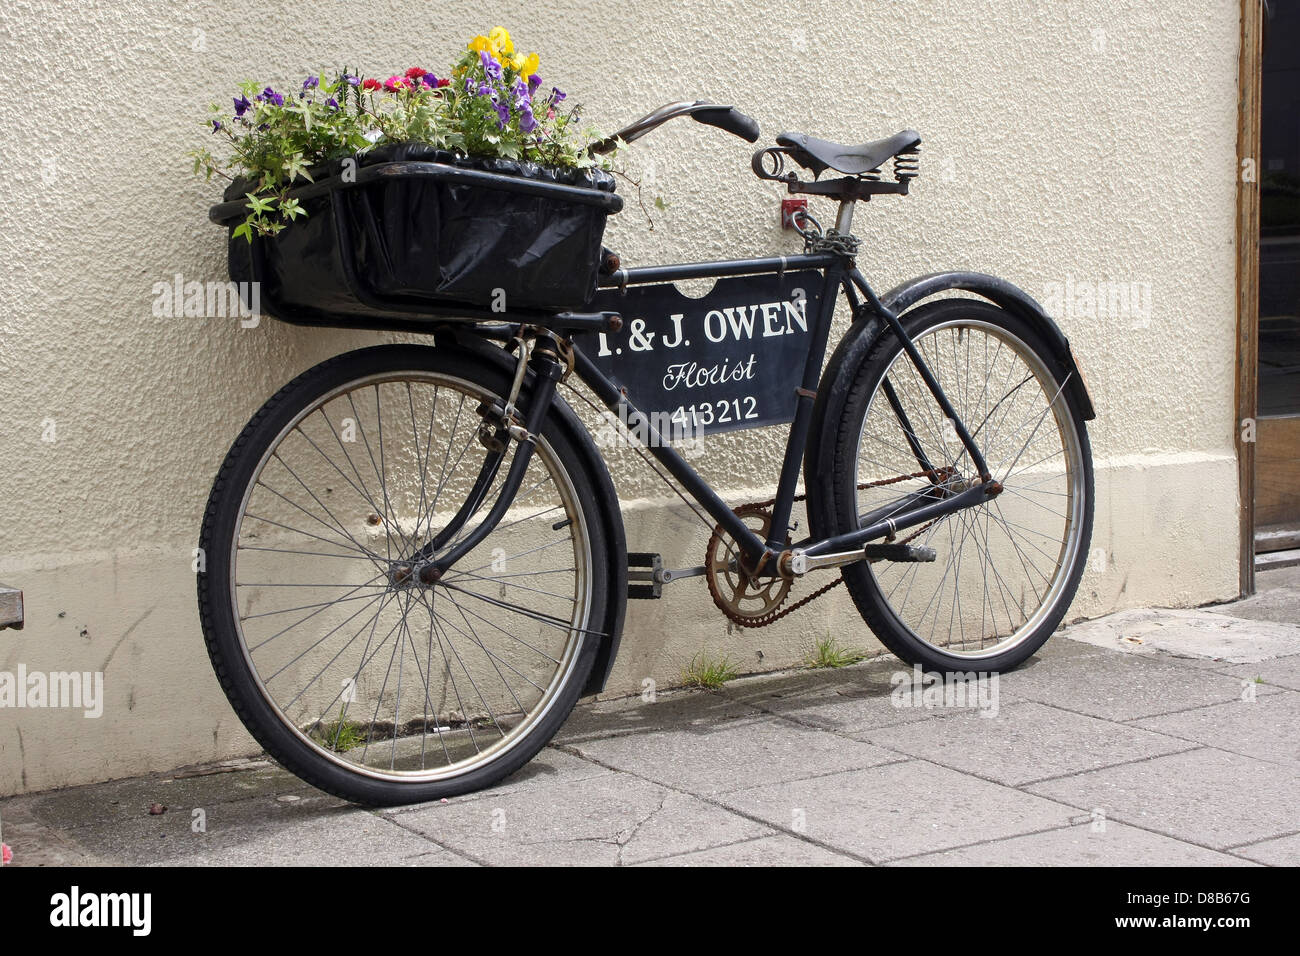 An old bike with flowers in the front to advertise a florists shop in Thornbury, Gloucestershire, May 2013 - Stock Image